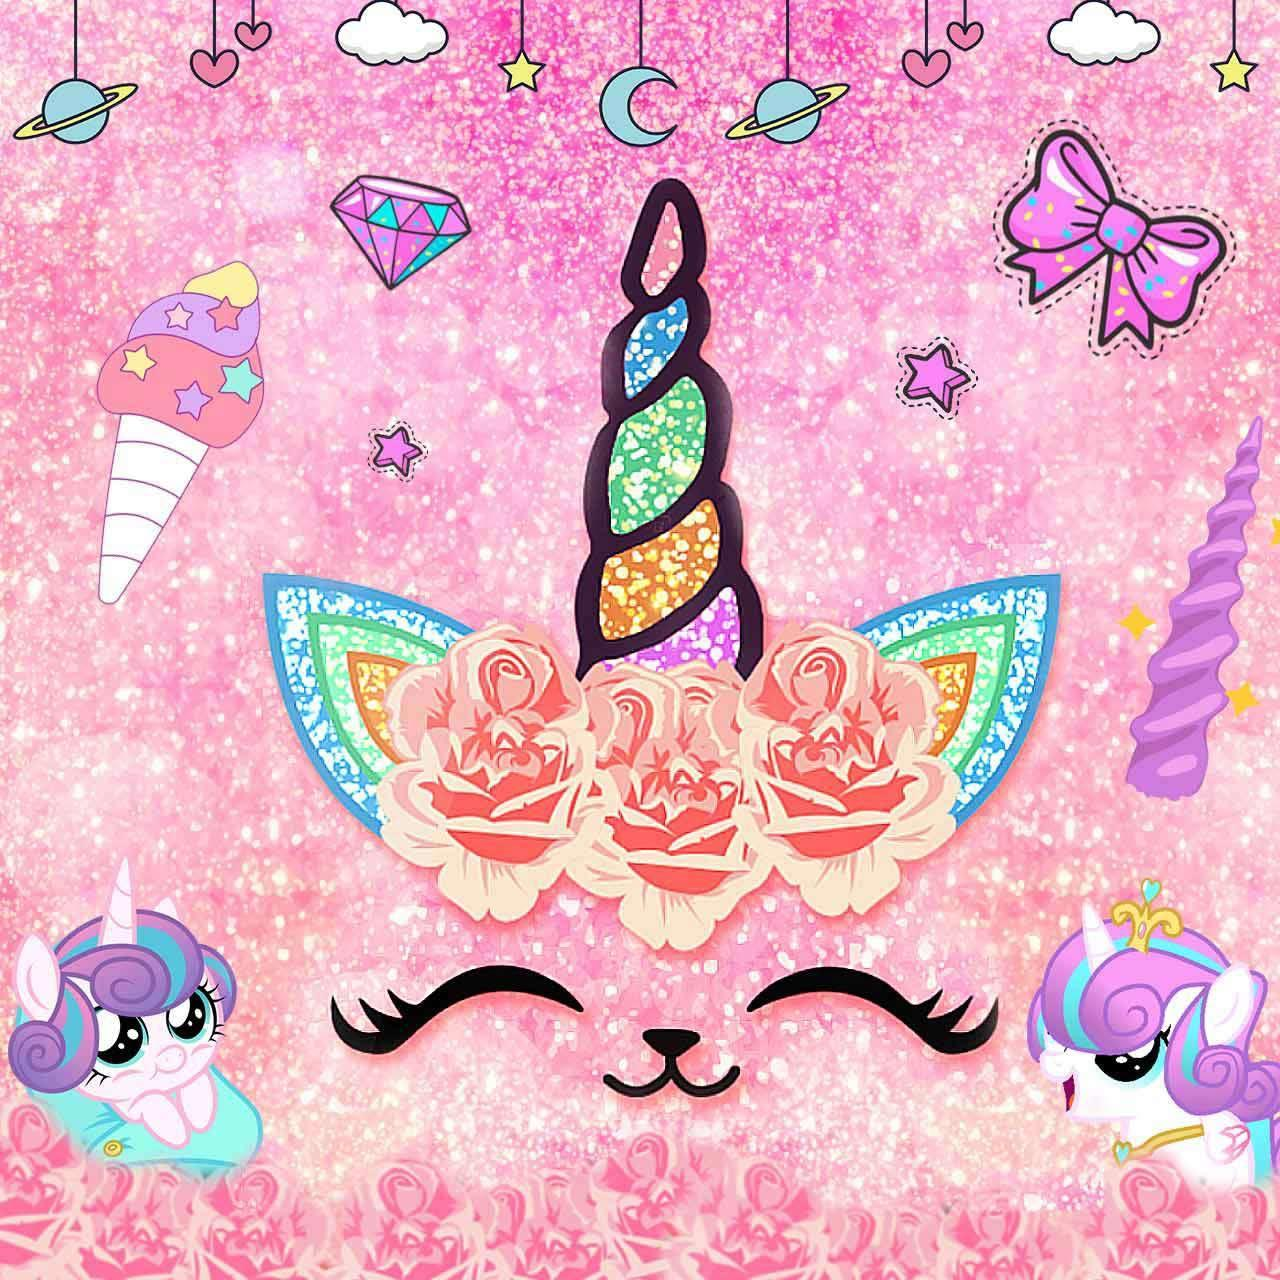 1280x1280 Flower Unicorn Cat for Android - APK Download